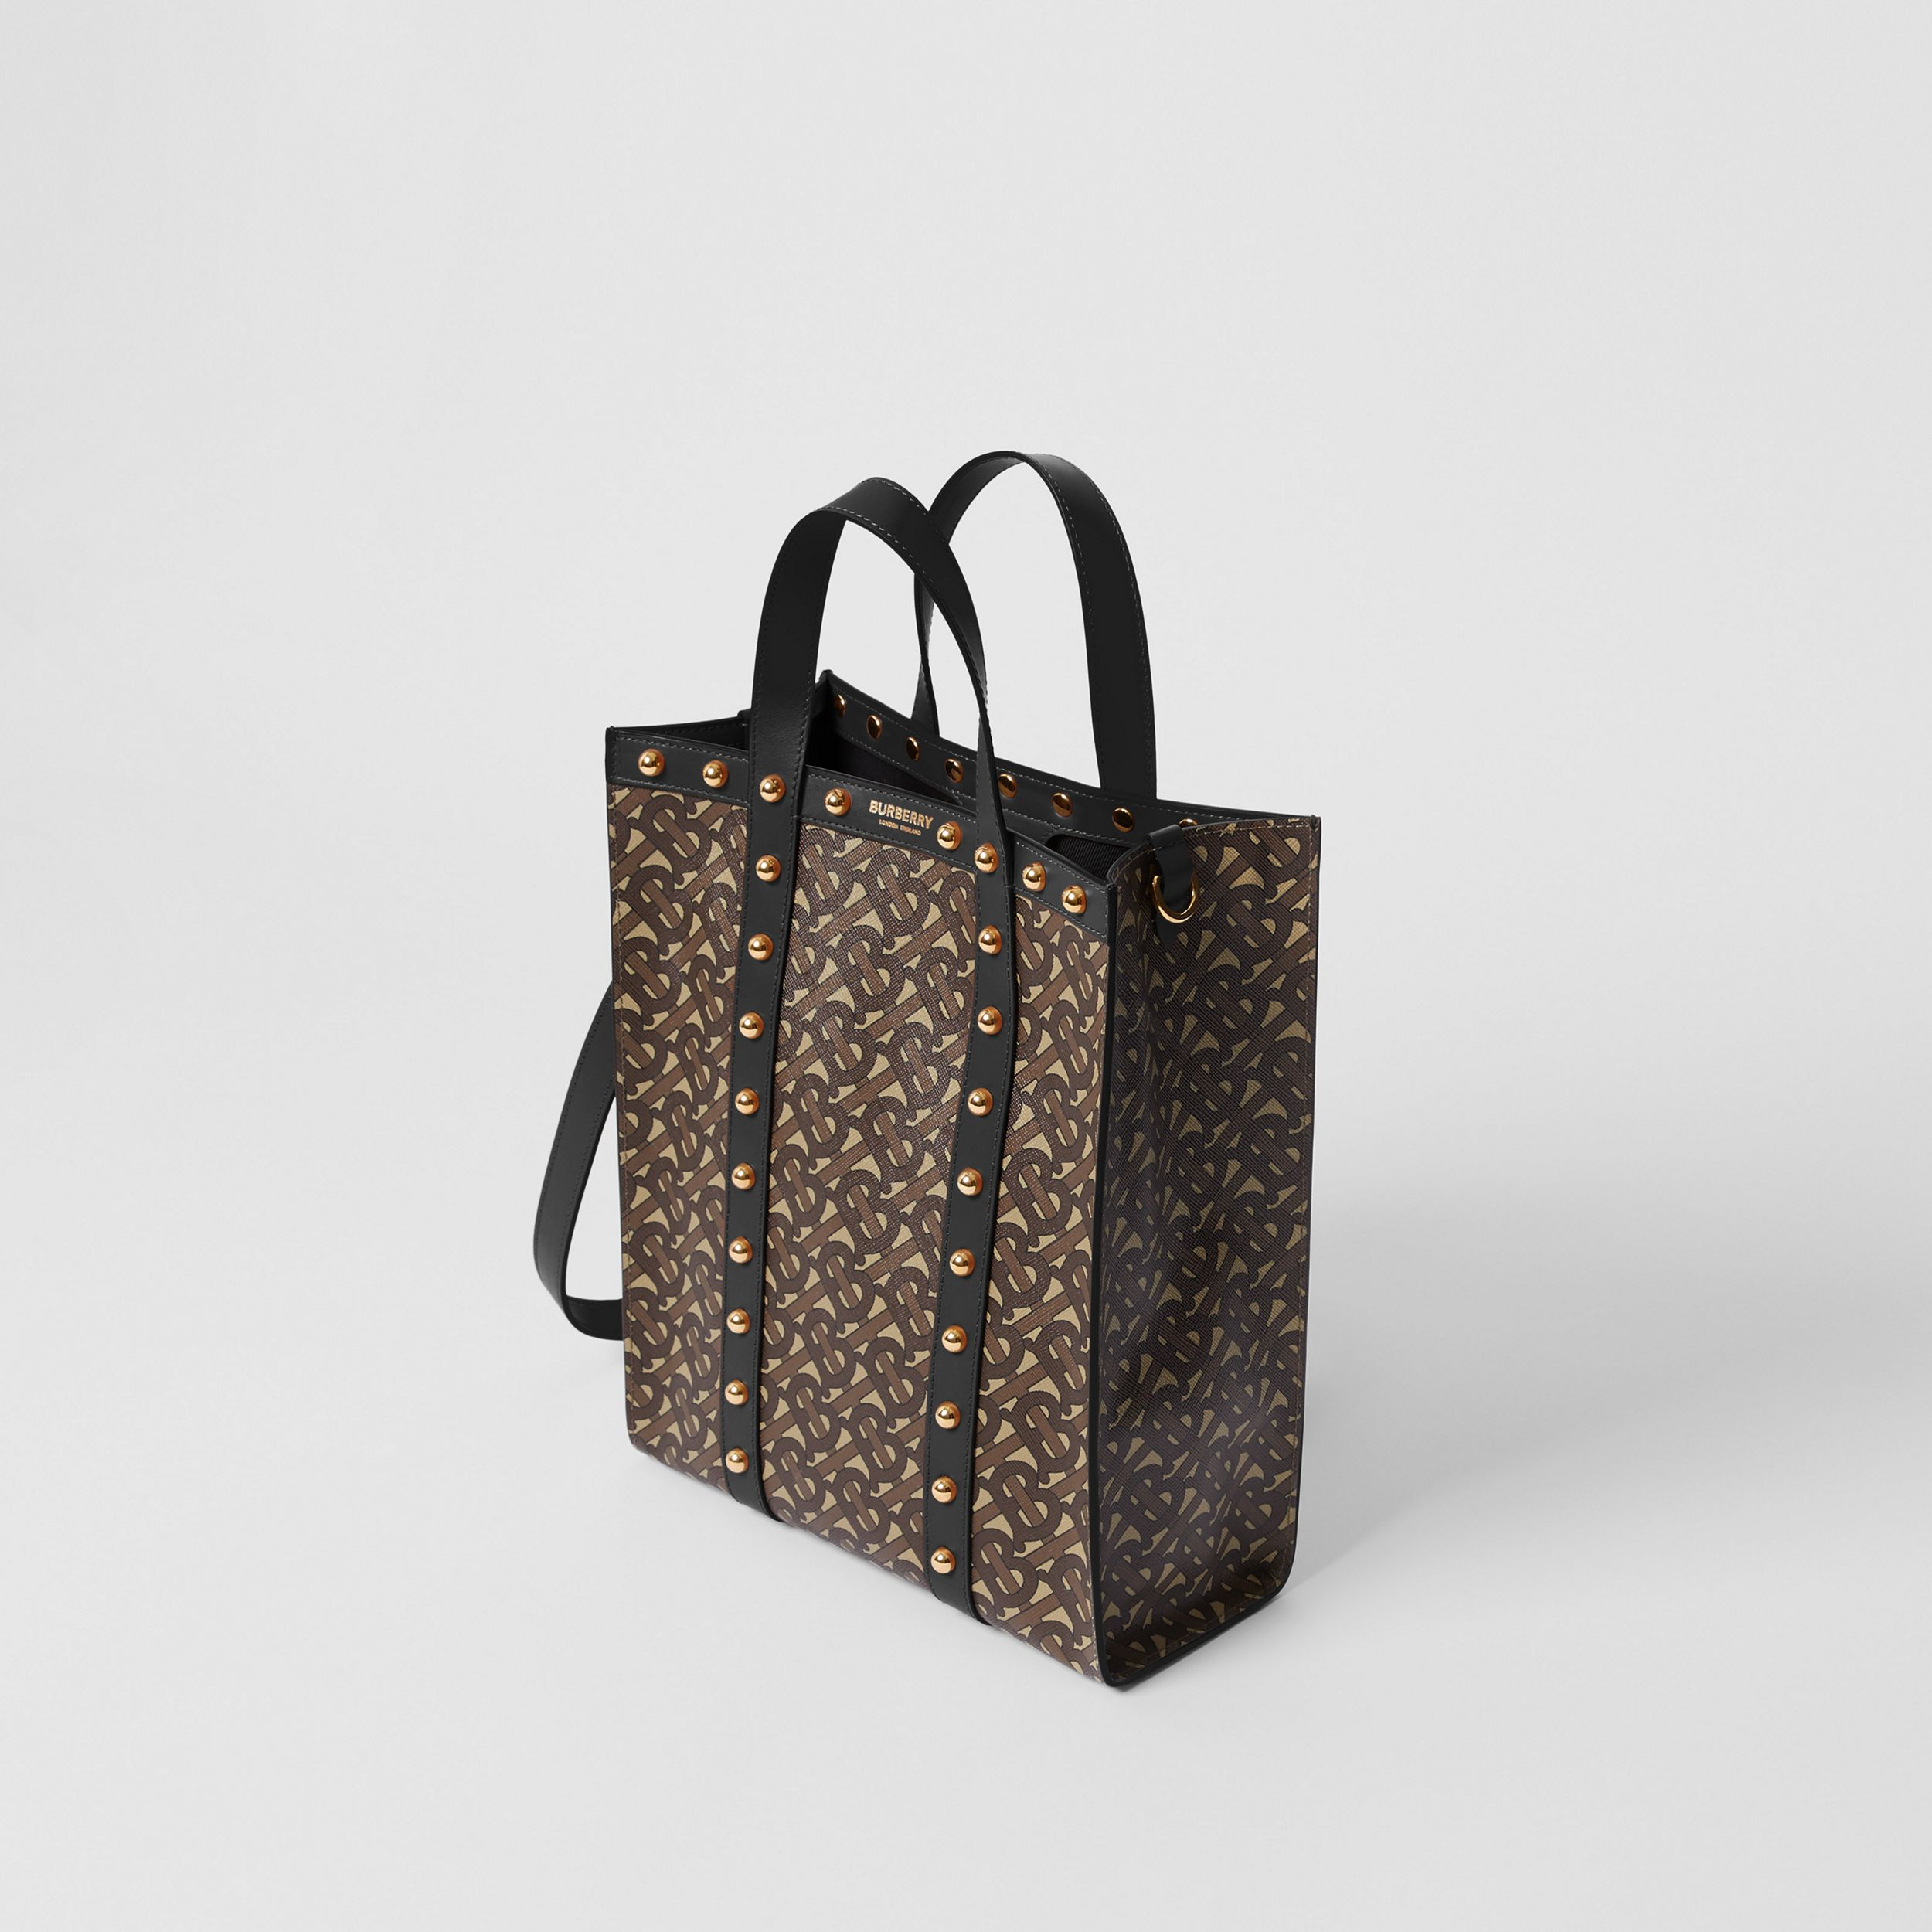 Small Monogram Print E-canvas Portrait Tote Bag in Black - Women | Burberry United Kingdom - 4